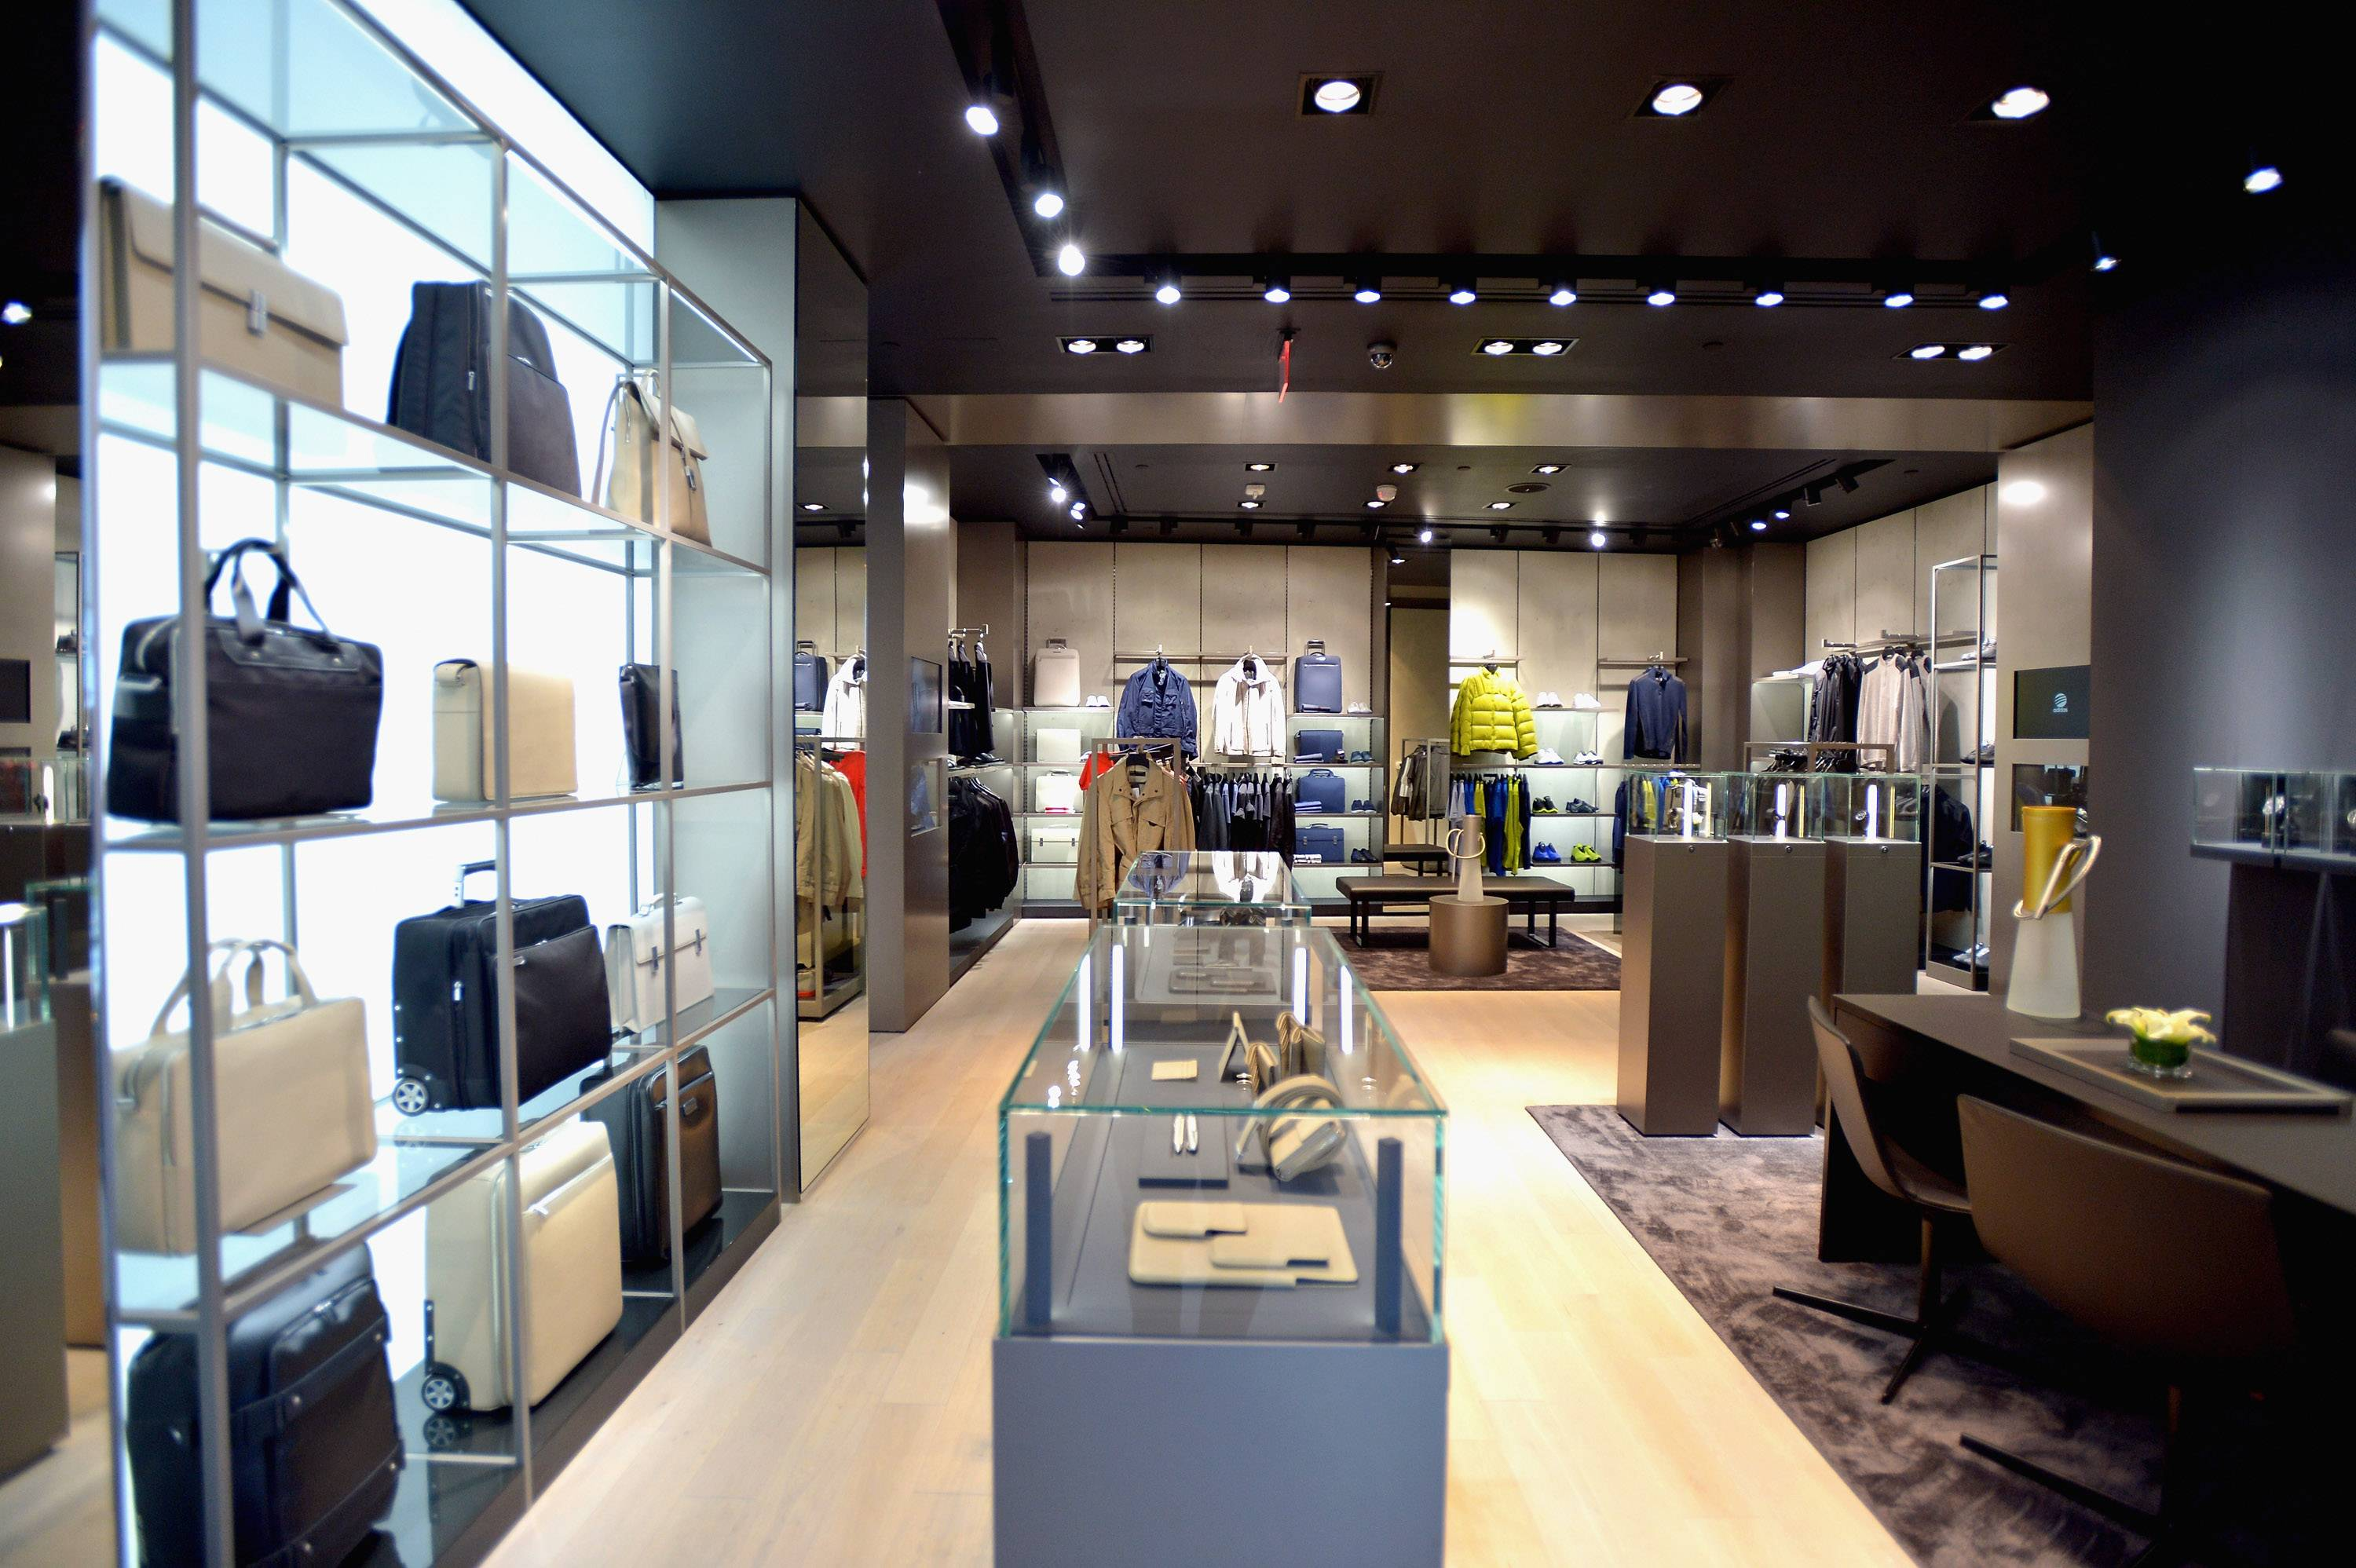 Porsche Design And Vogue Re-Opening Event For Porsche Design Beverly Hills